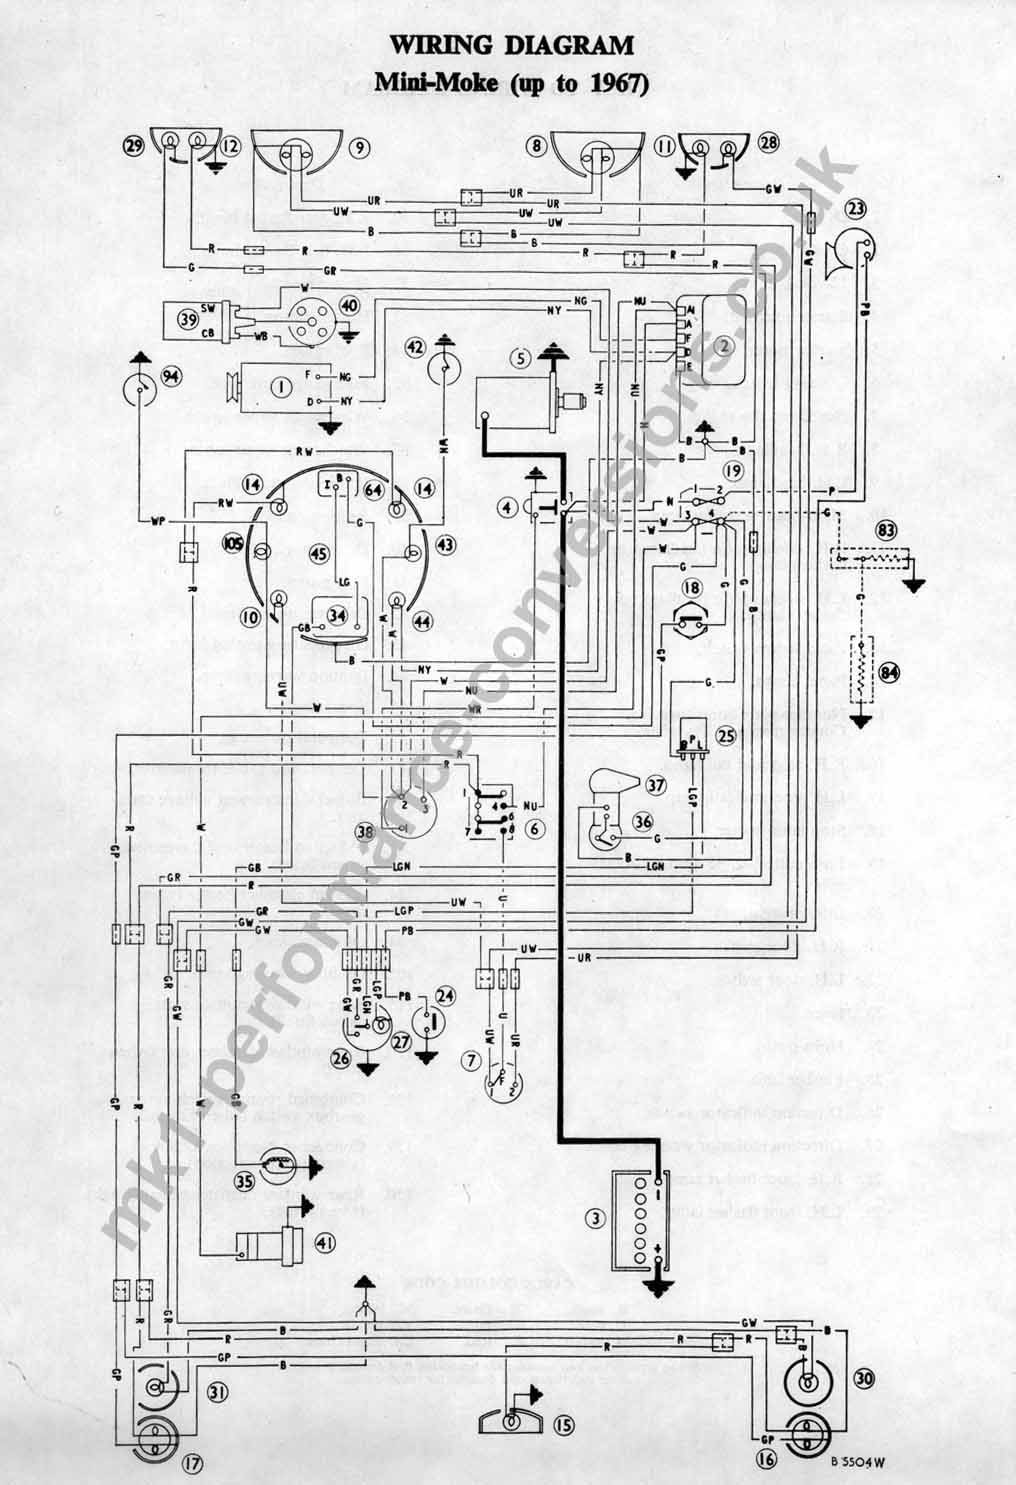 mk1_moke_wiring technical (electrical) escort mk1 wiring diagram at couponss.co